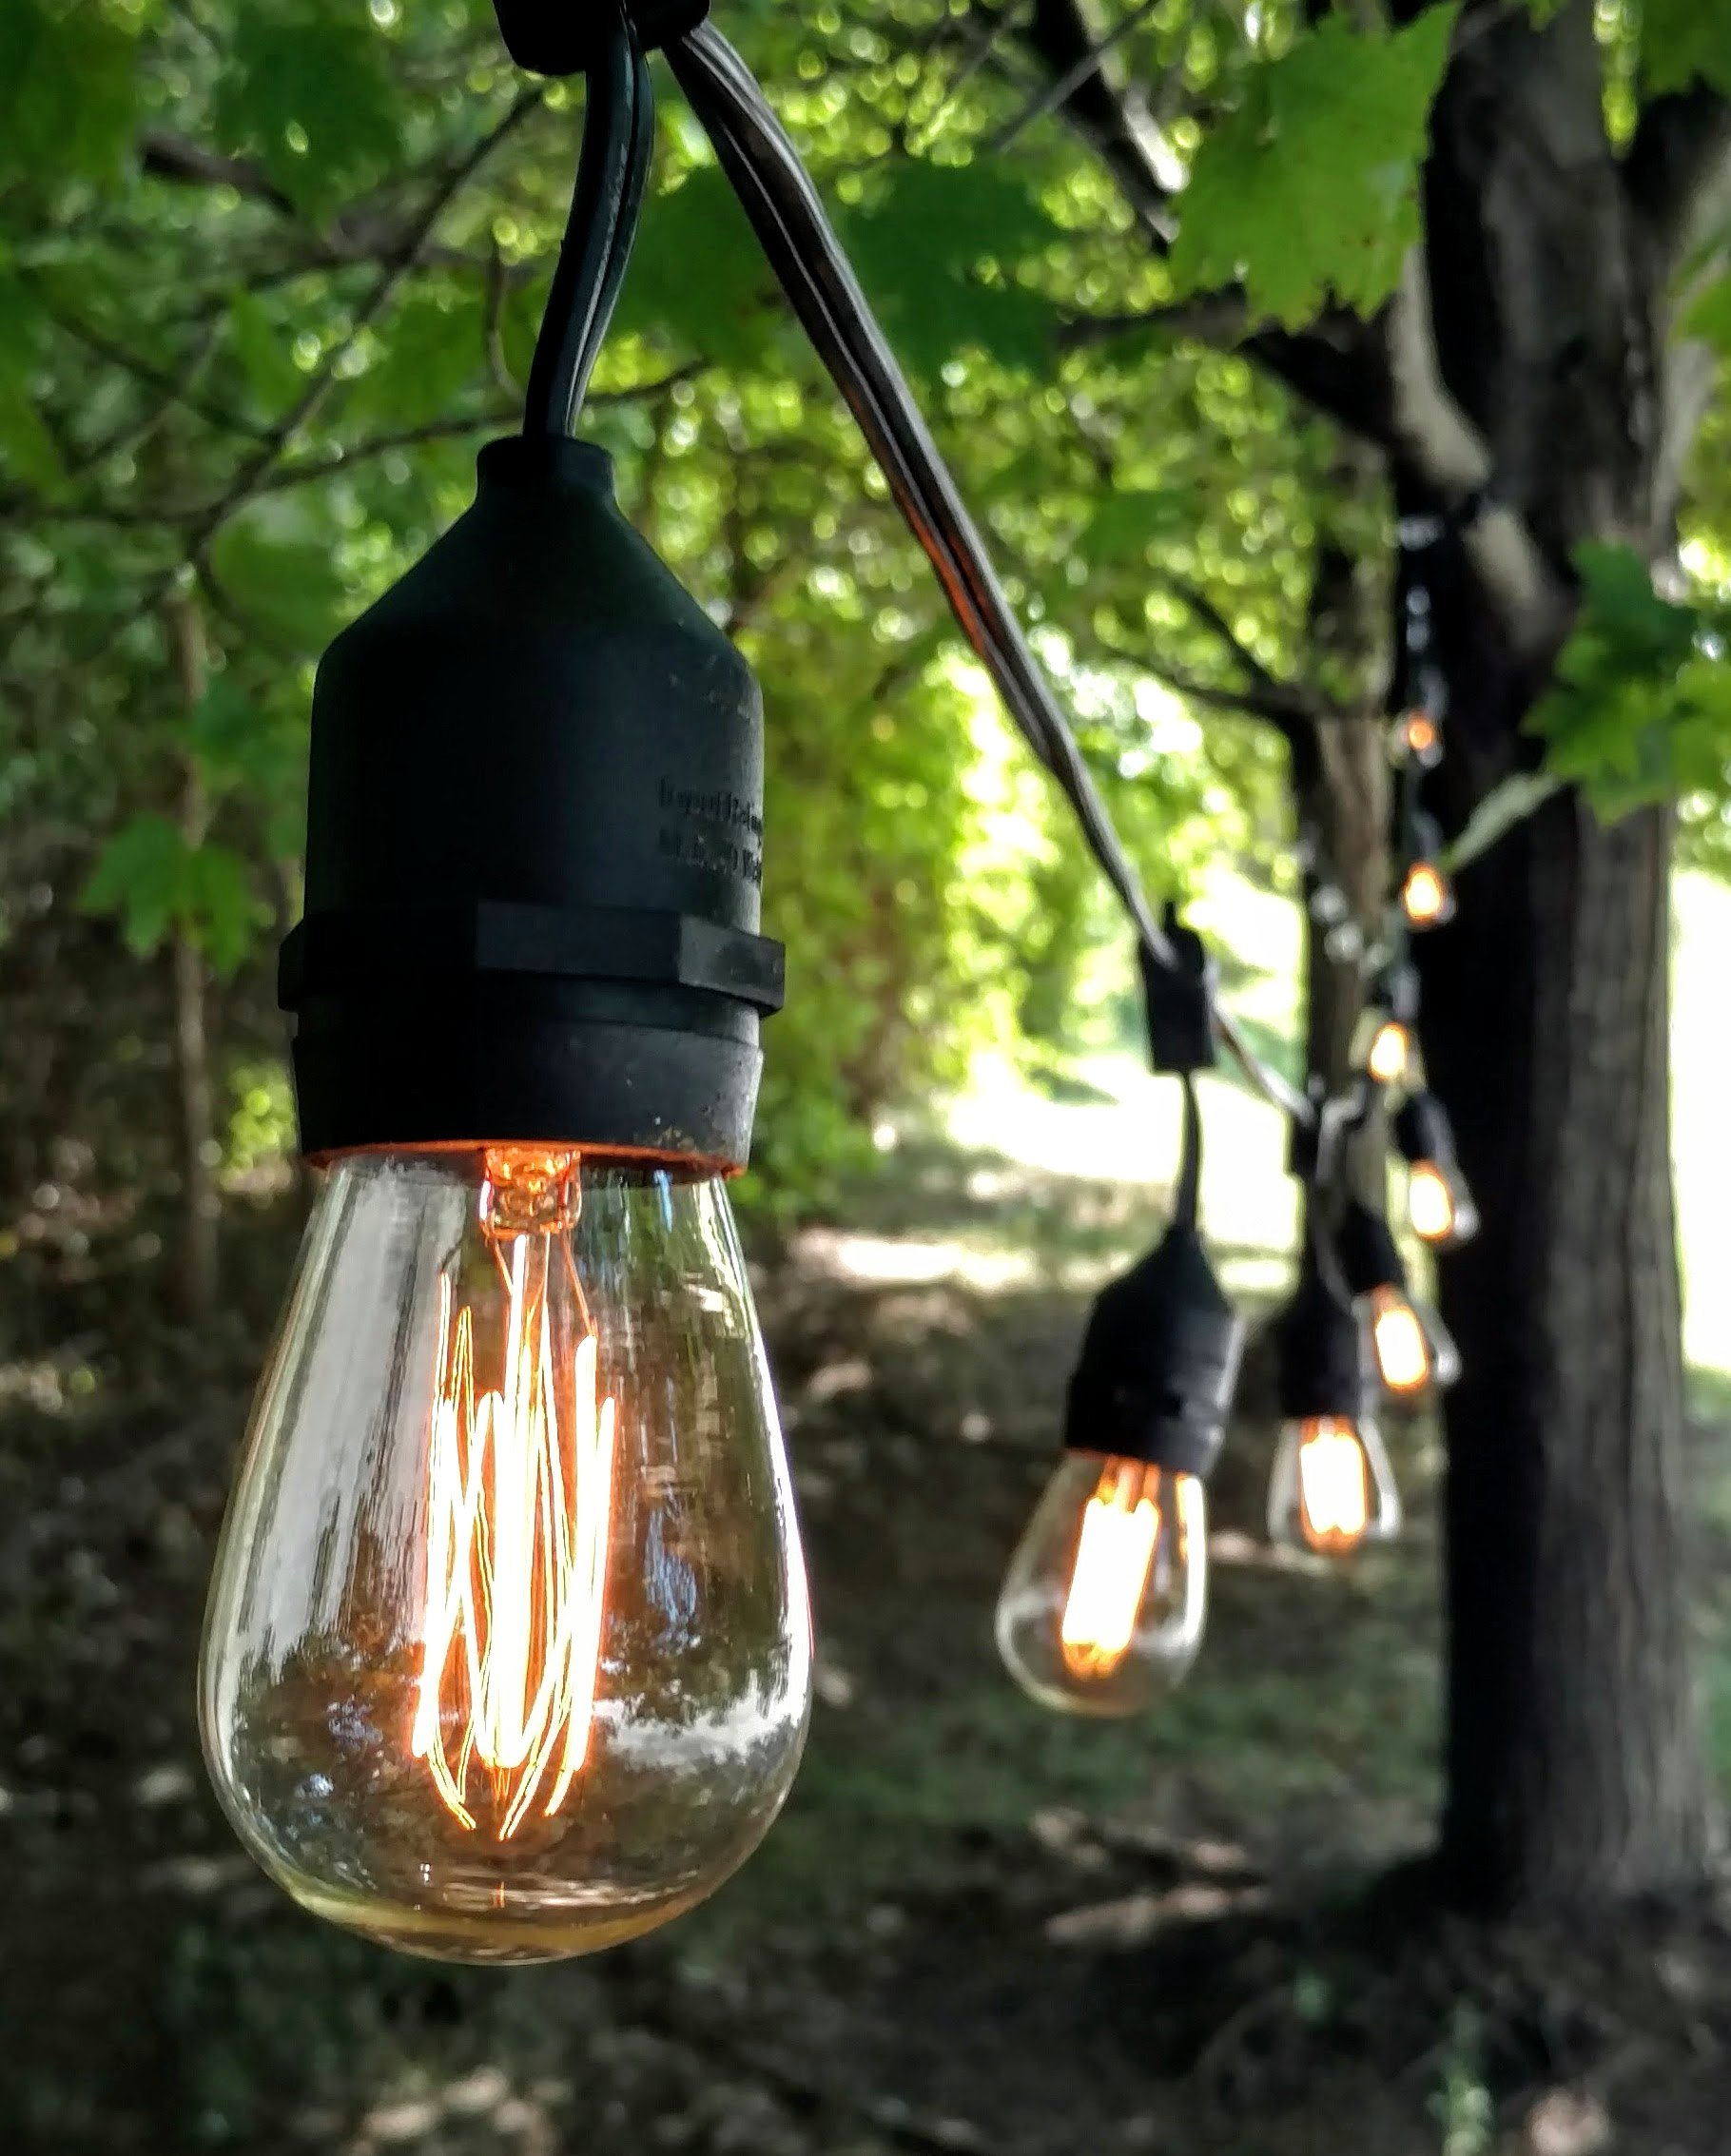 E26 Outdoor Commercial String Lights with Suspended Socket for Weatherproof Heavy Duty Vintage Outside Lighting (100 Foot 50 Socket, S14 Lantern Edison 11 Watt Bulbs)